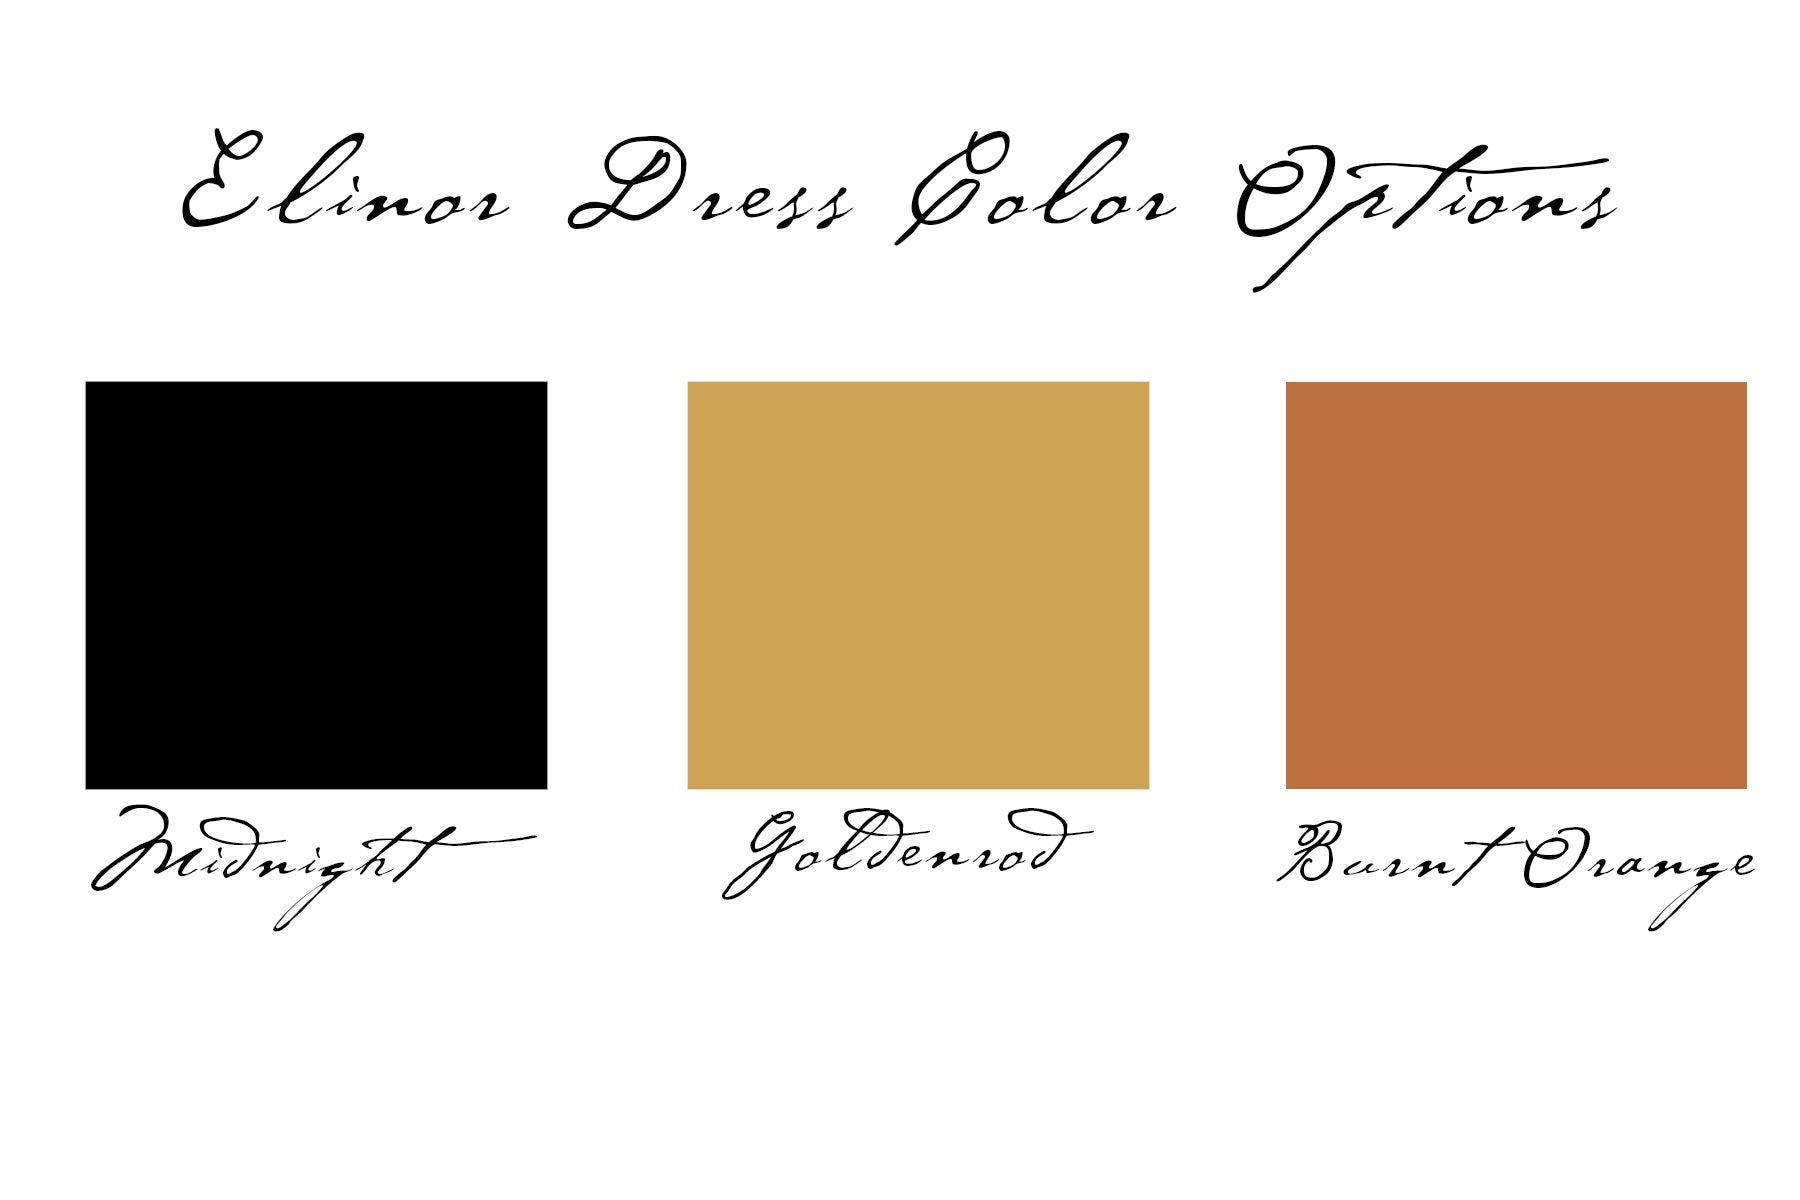 Elinor Dress Color Options